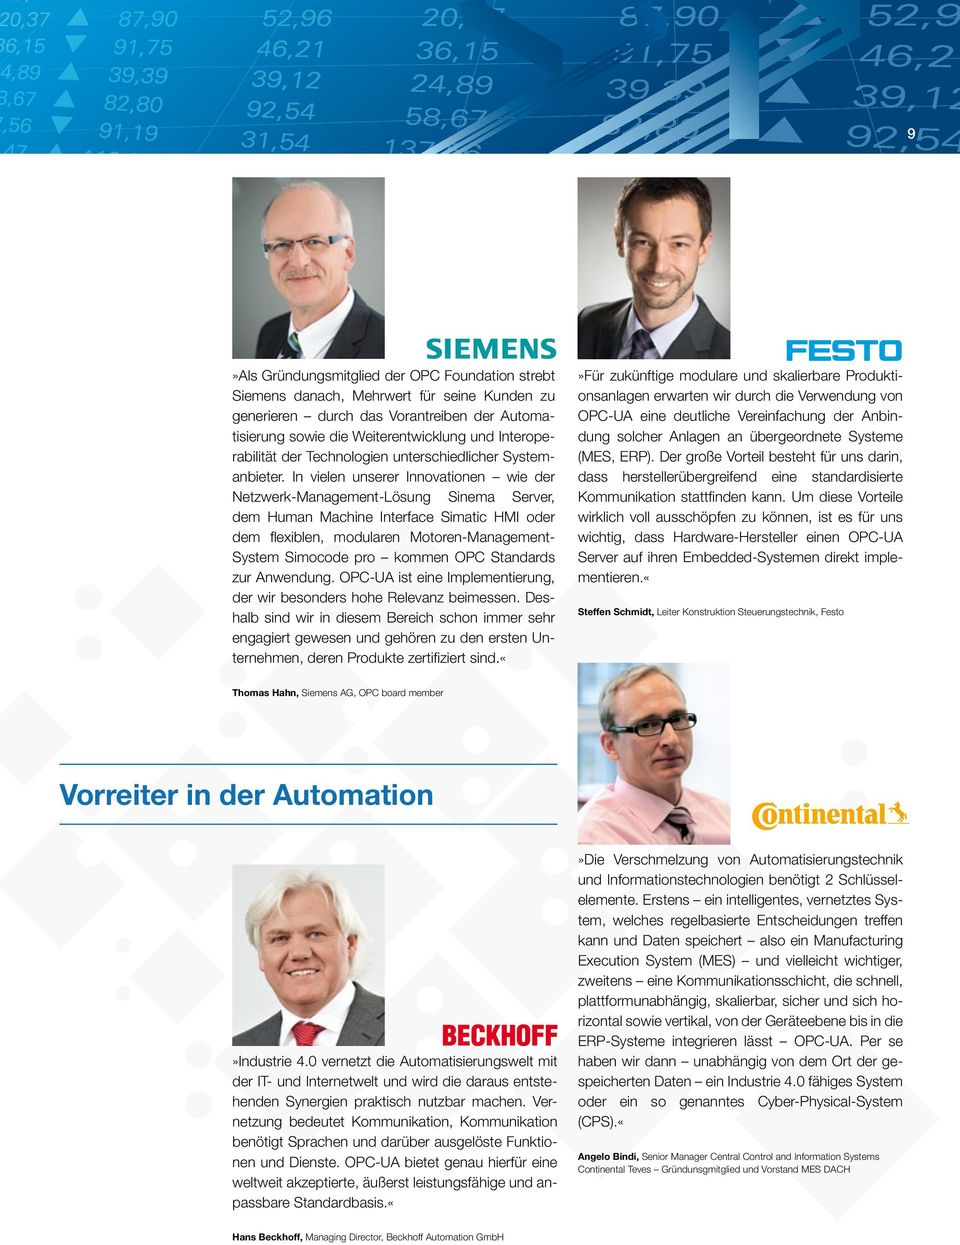 In vielen unserer Innovationen wie der Netzwerk-Management-Lösung Sinema Server, dem Human Machine Interface Simatic HMI oder dem flexiblen, modularen Motoren-Management- System Simocode pro kommen